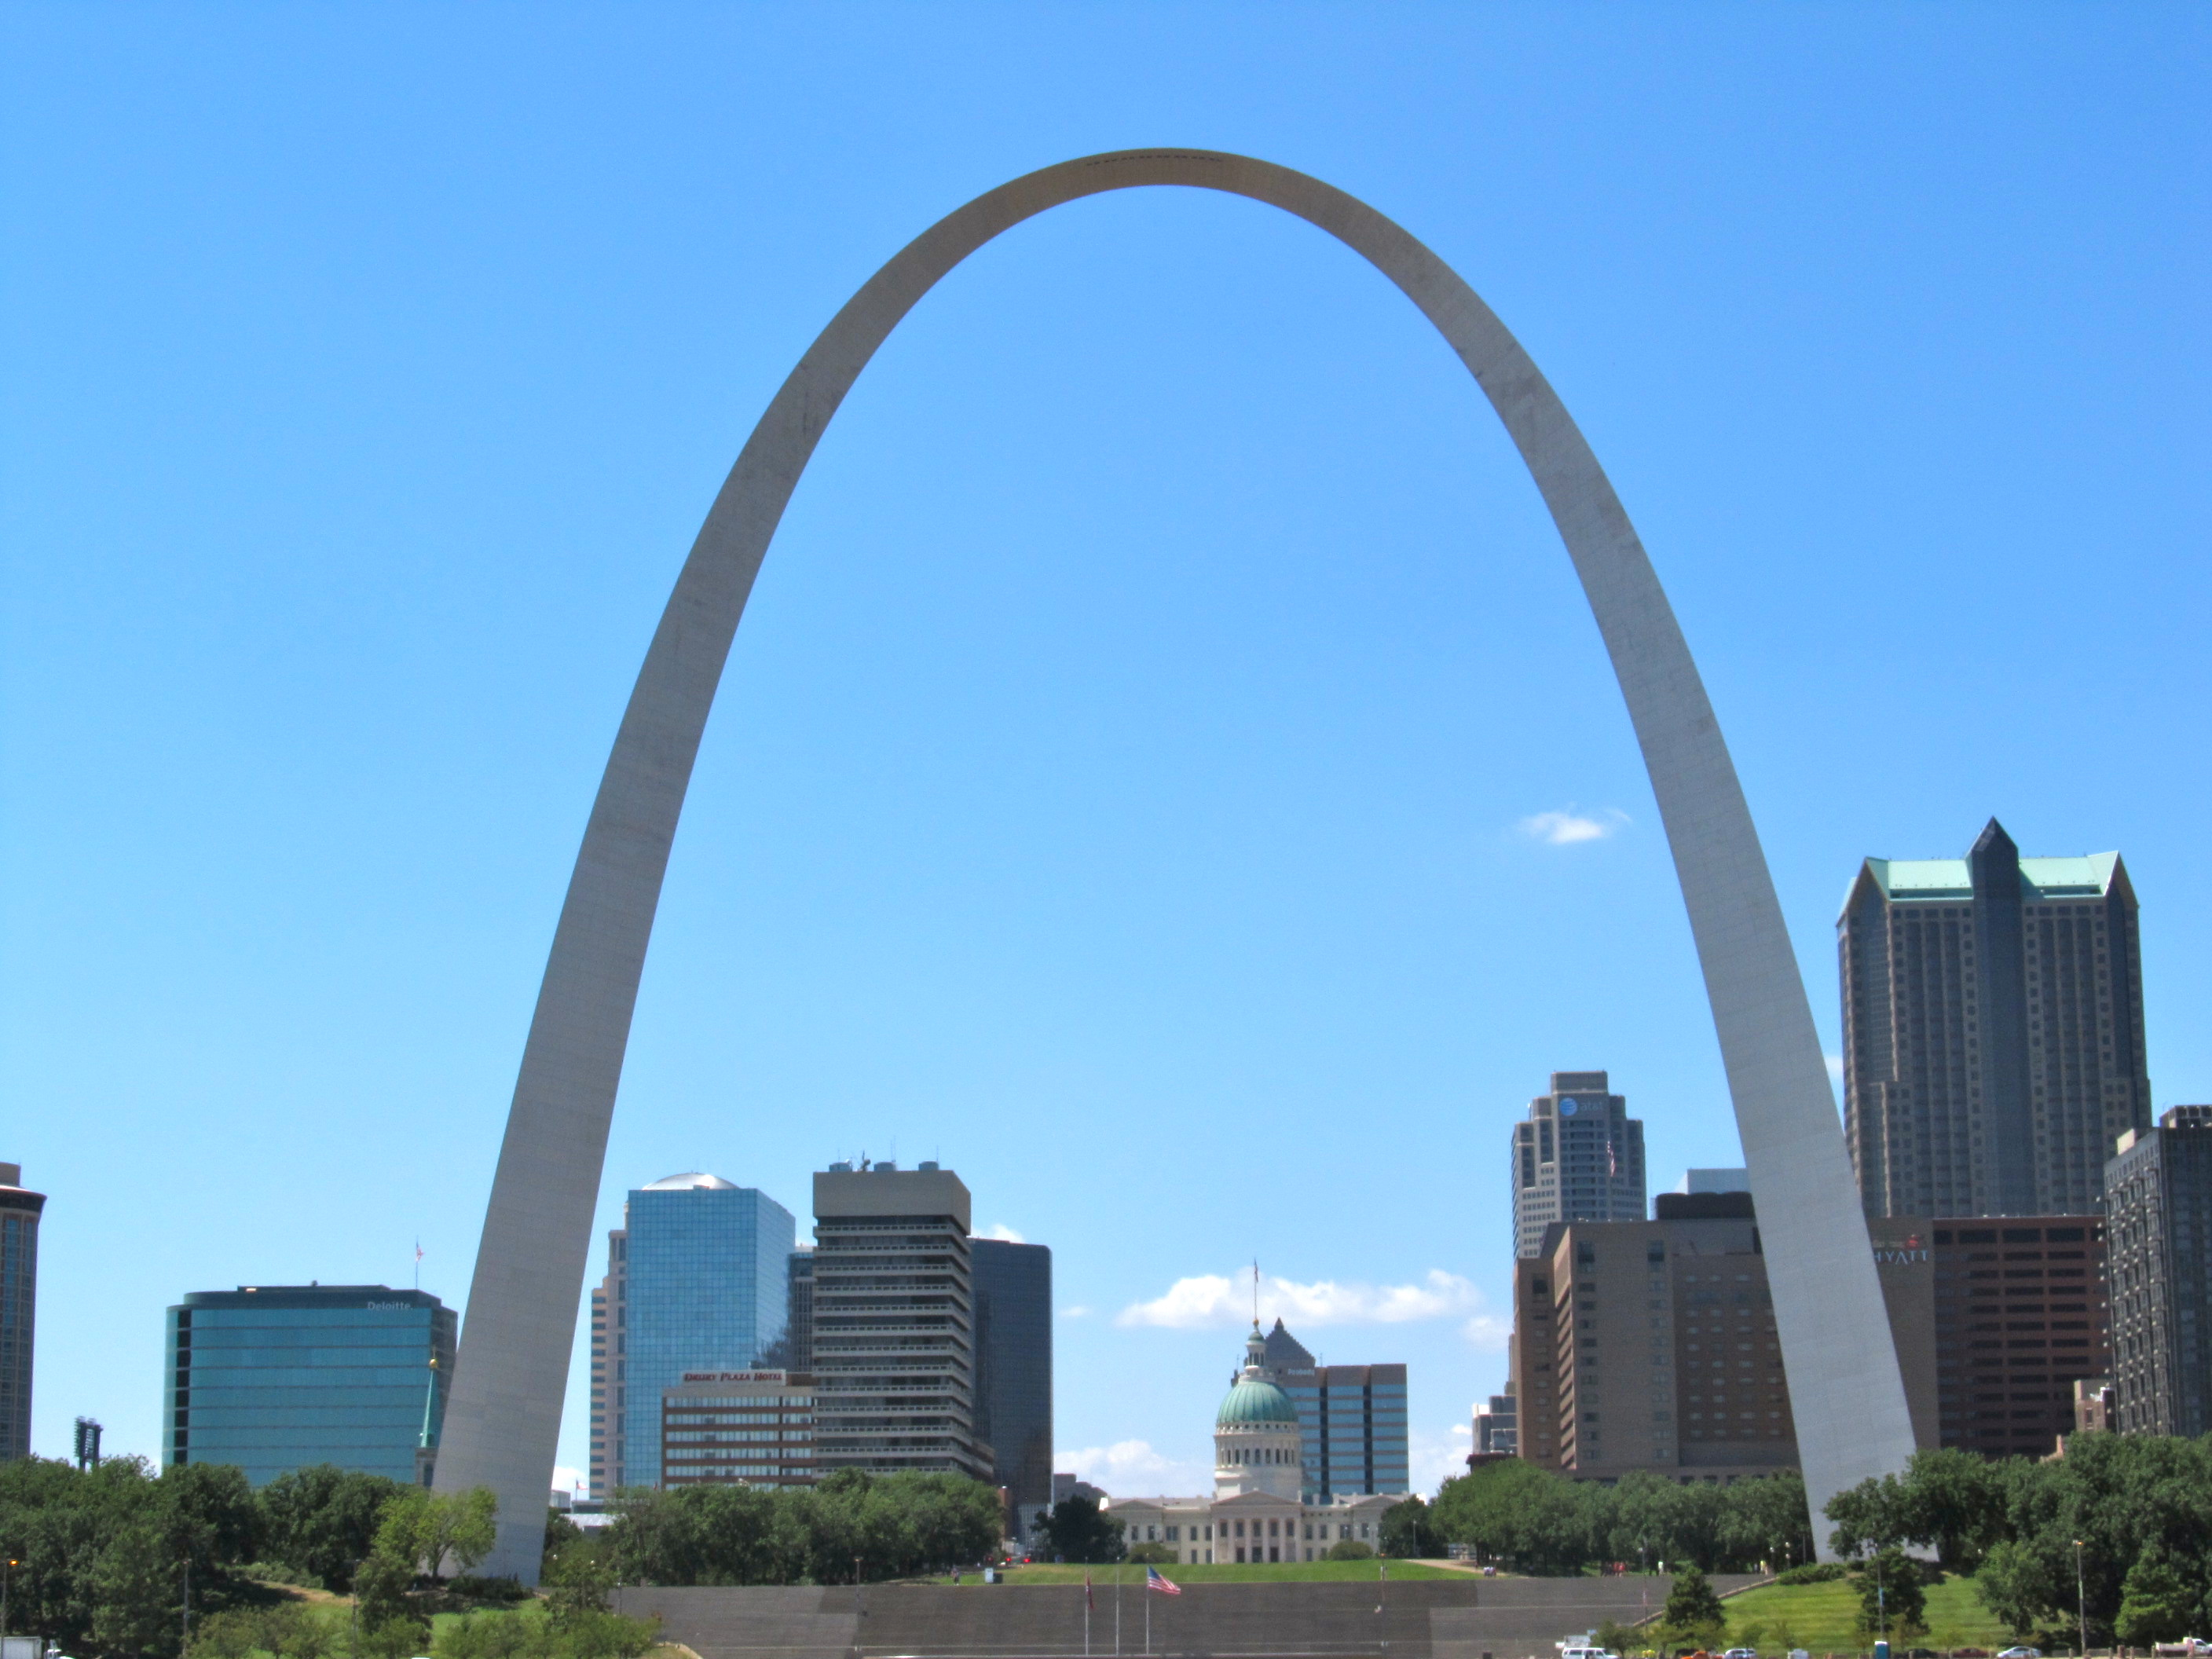 The Gateway Arch in St. Louis | Jim Mancari